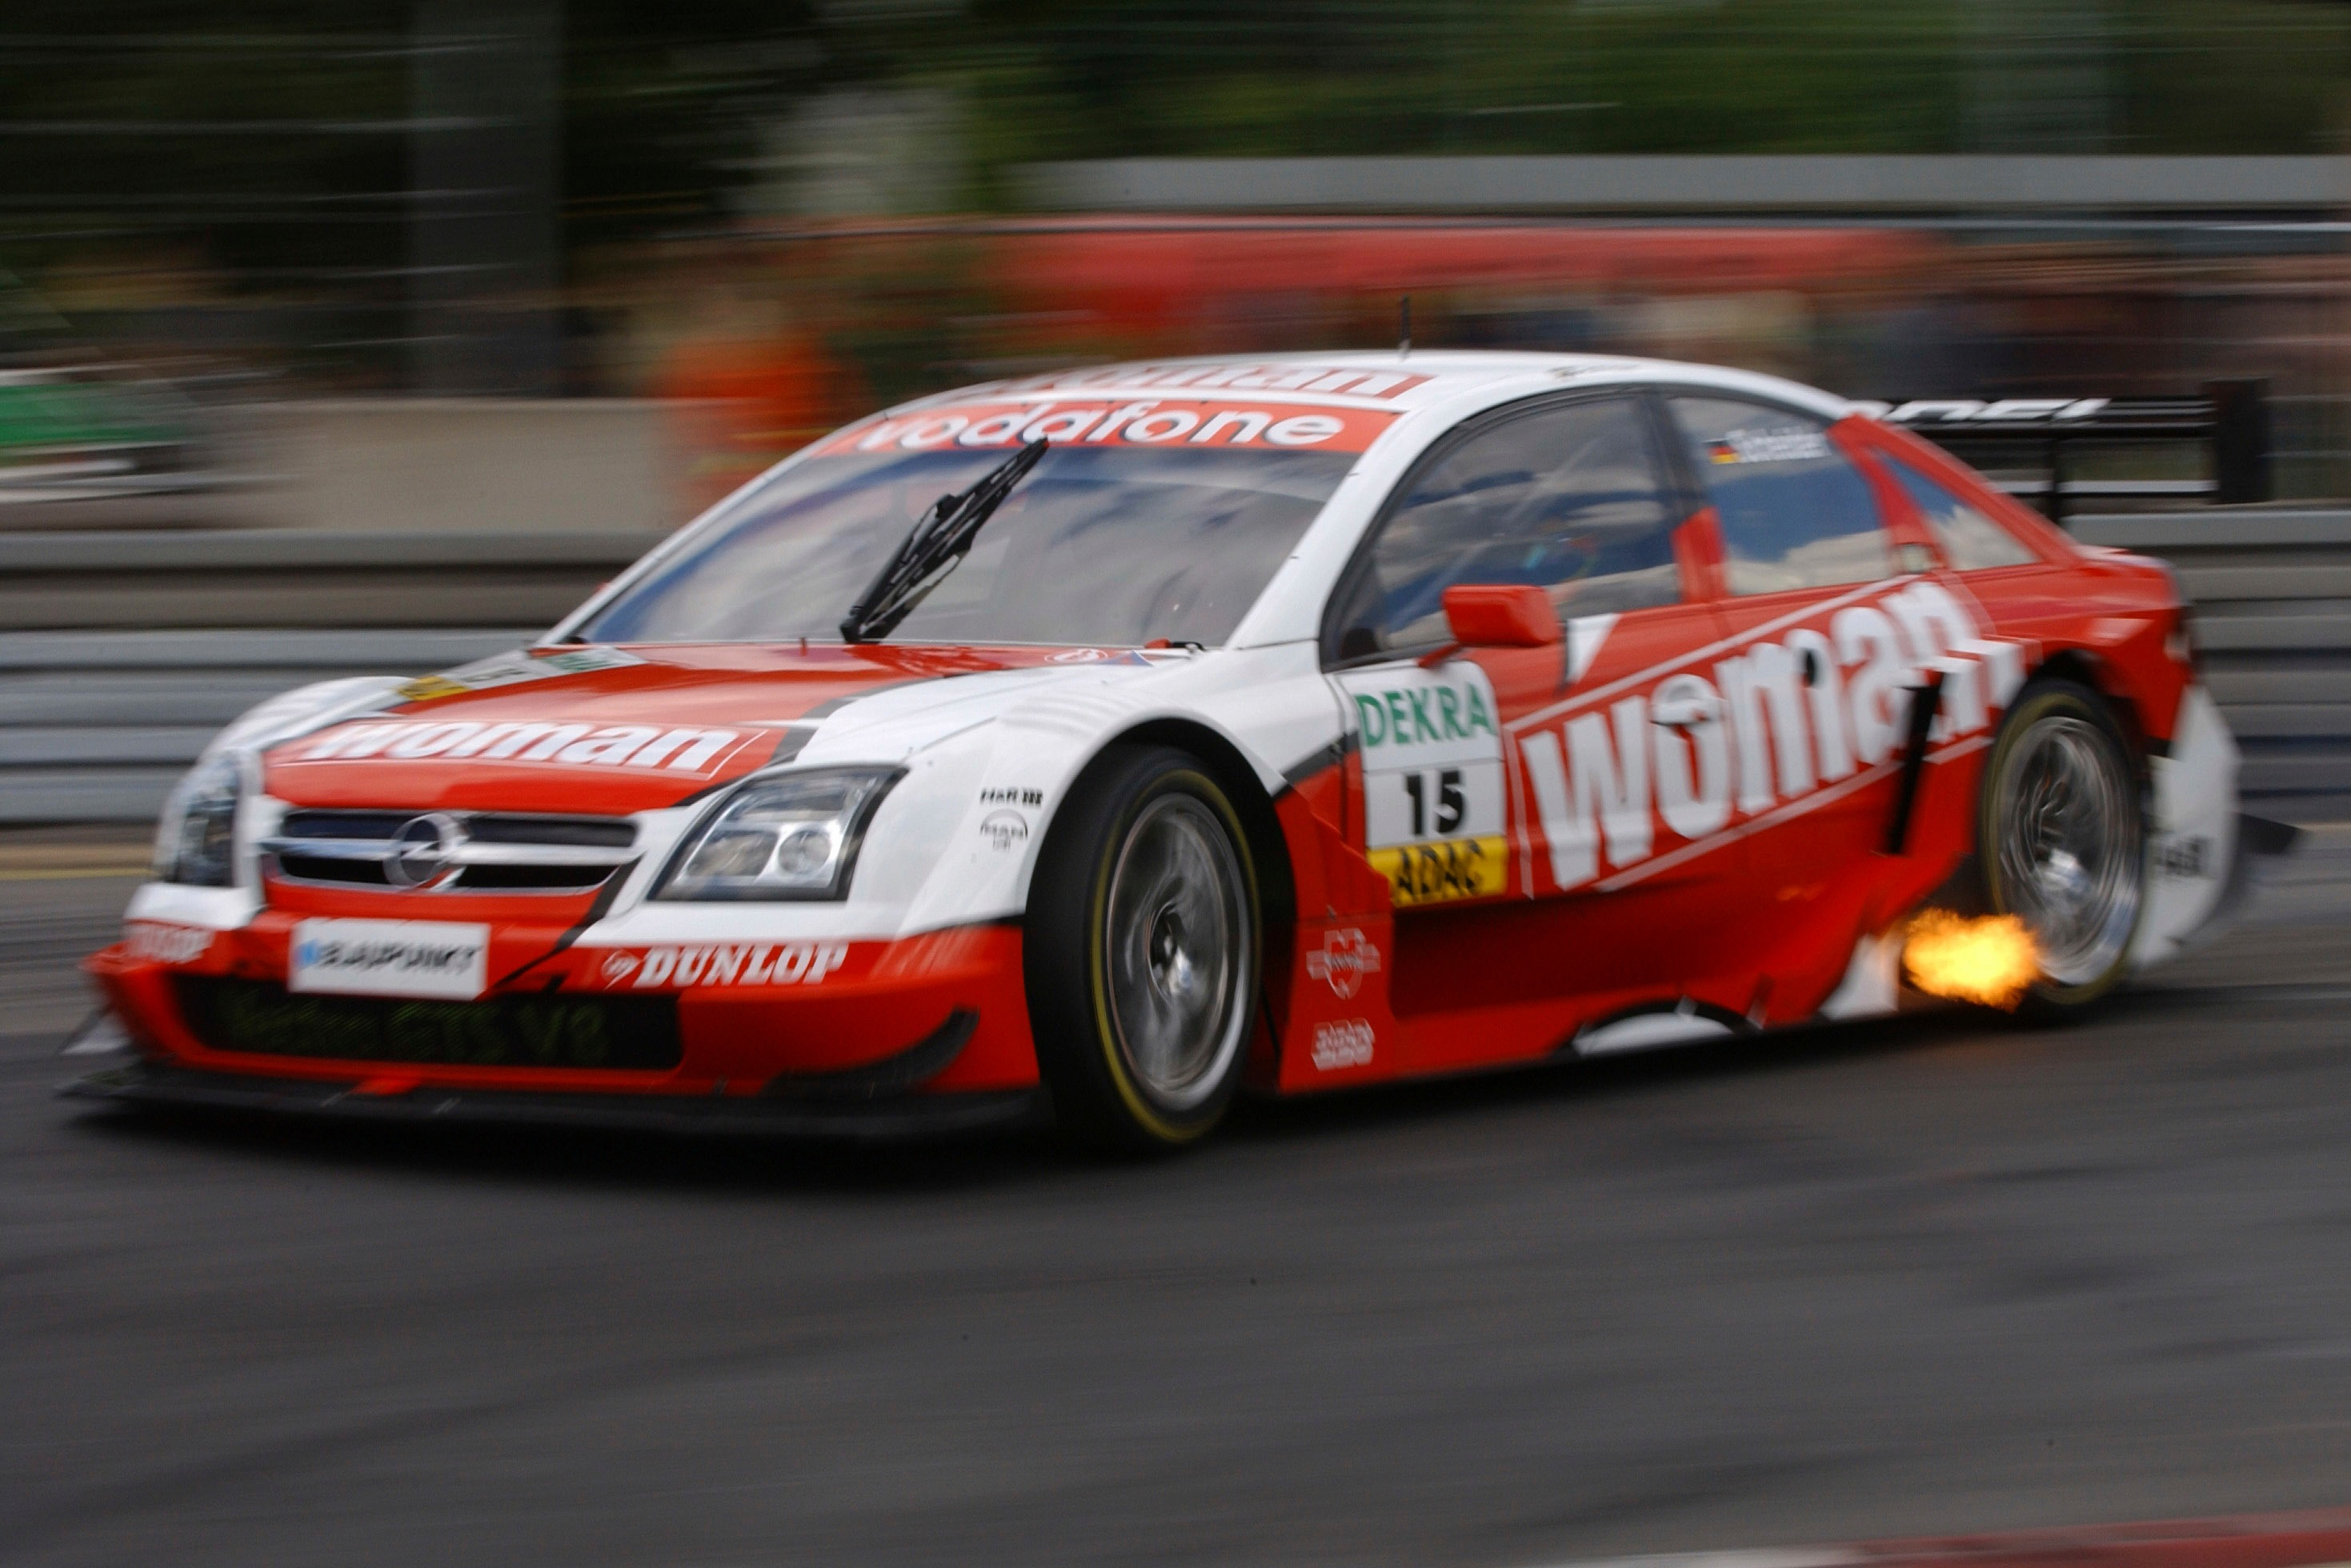 Goodfield forged a good relationship with Scheider, who finished as the best Opel driver in the Vectra's first year in 2004